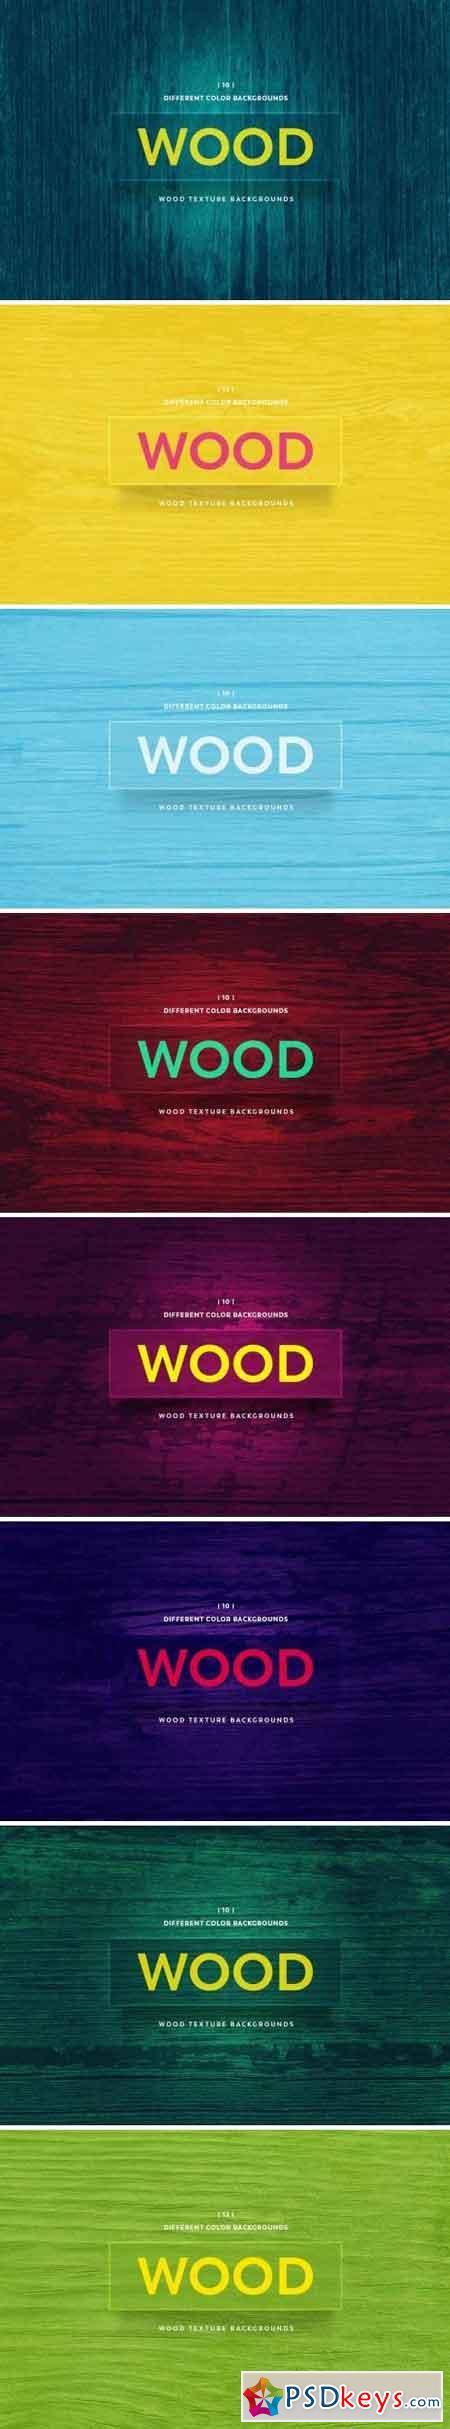 Wood Texture Backgrounds Bundle